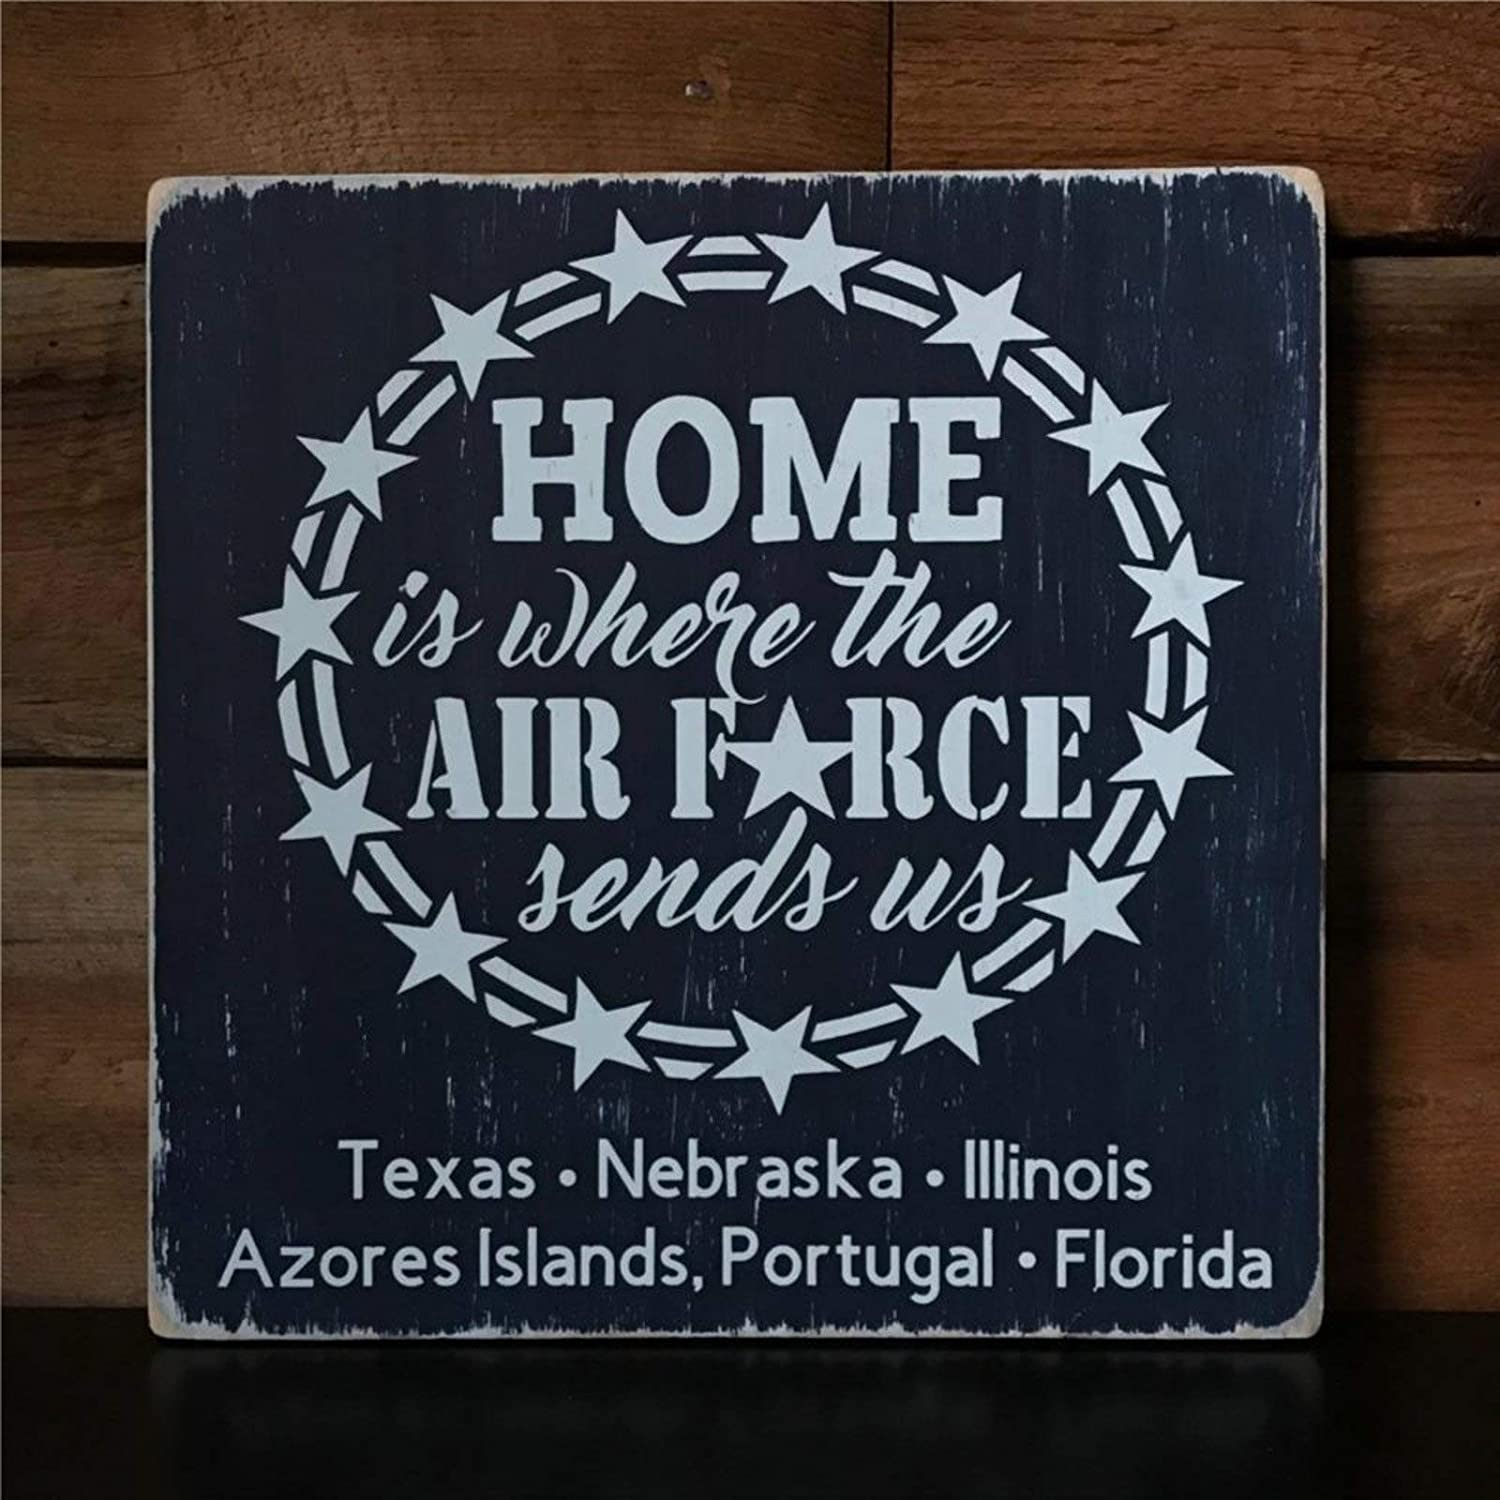 DONL9BAUER is Where The Air Force Sends Us Military Family Wood Sign, Wood Wall Decor Sign, Wooden Plaque Art for Home,Office,Gardens, Coffee Shop,Porch, Gallery Wall.